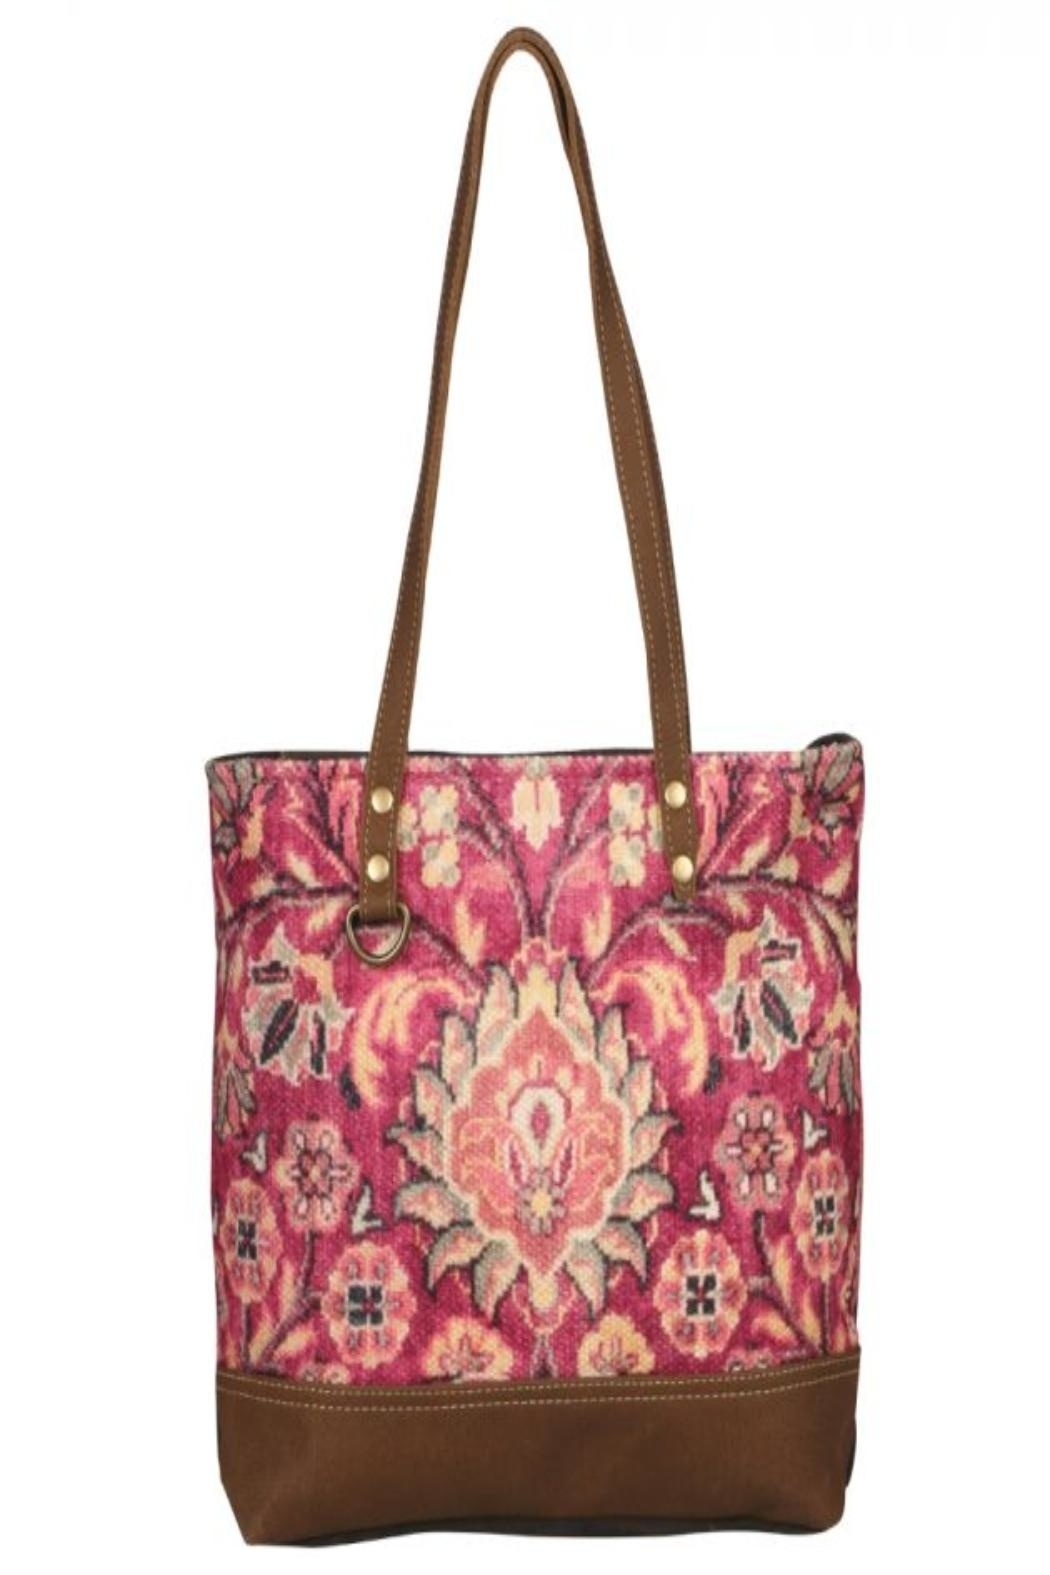 Myra Bags Blossomy-Pink Tote Bag - Front Full Image